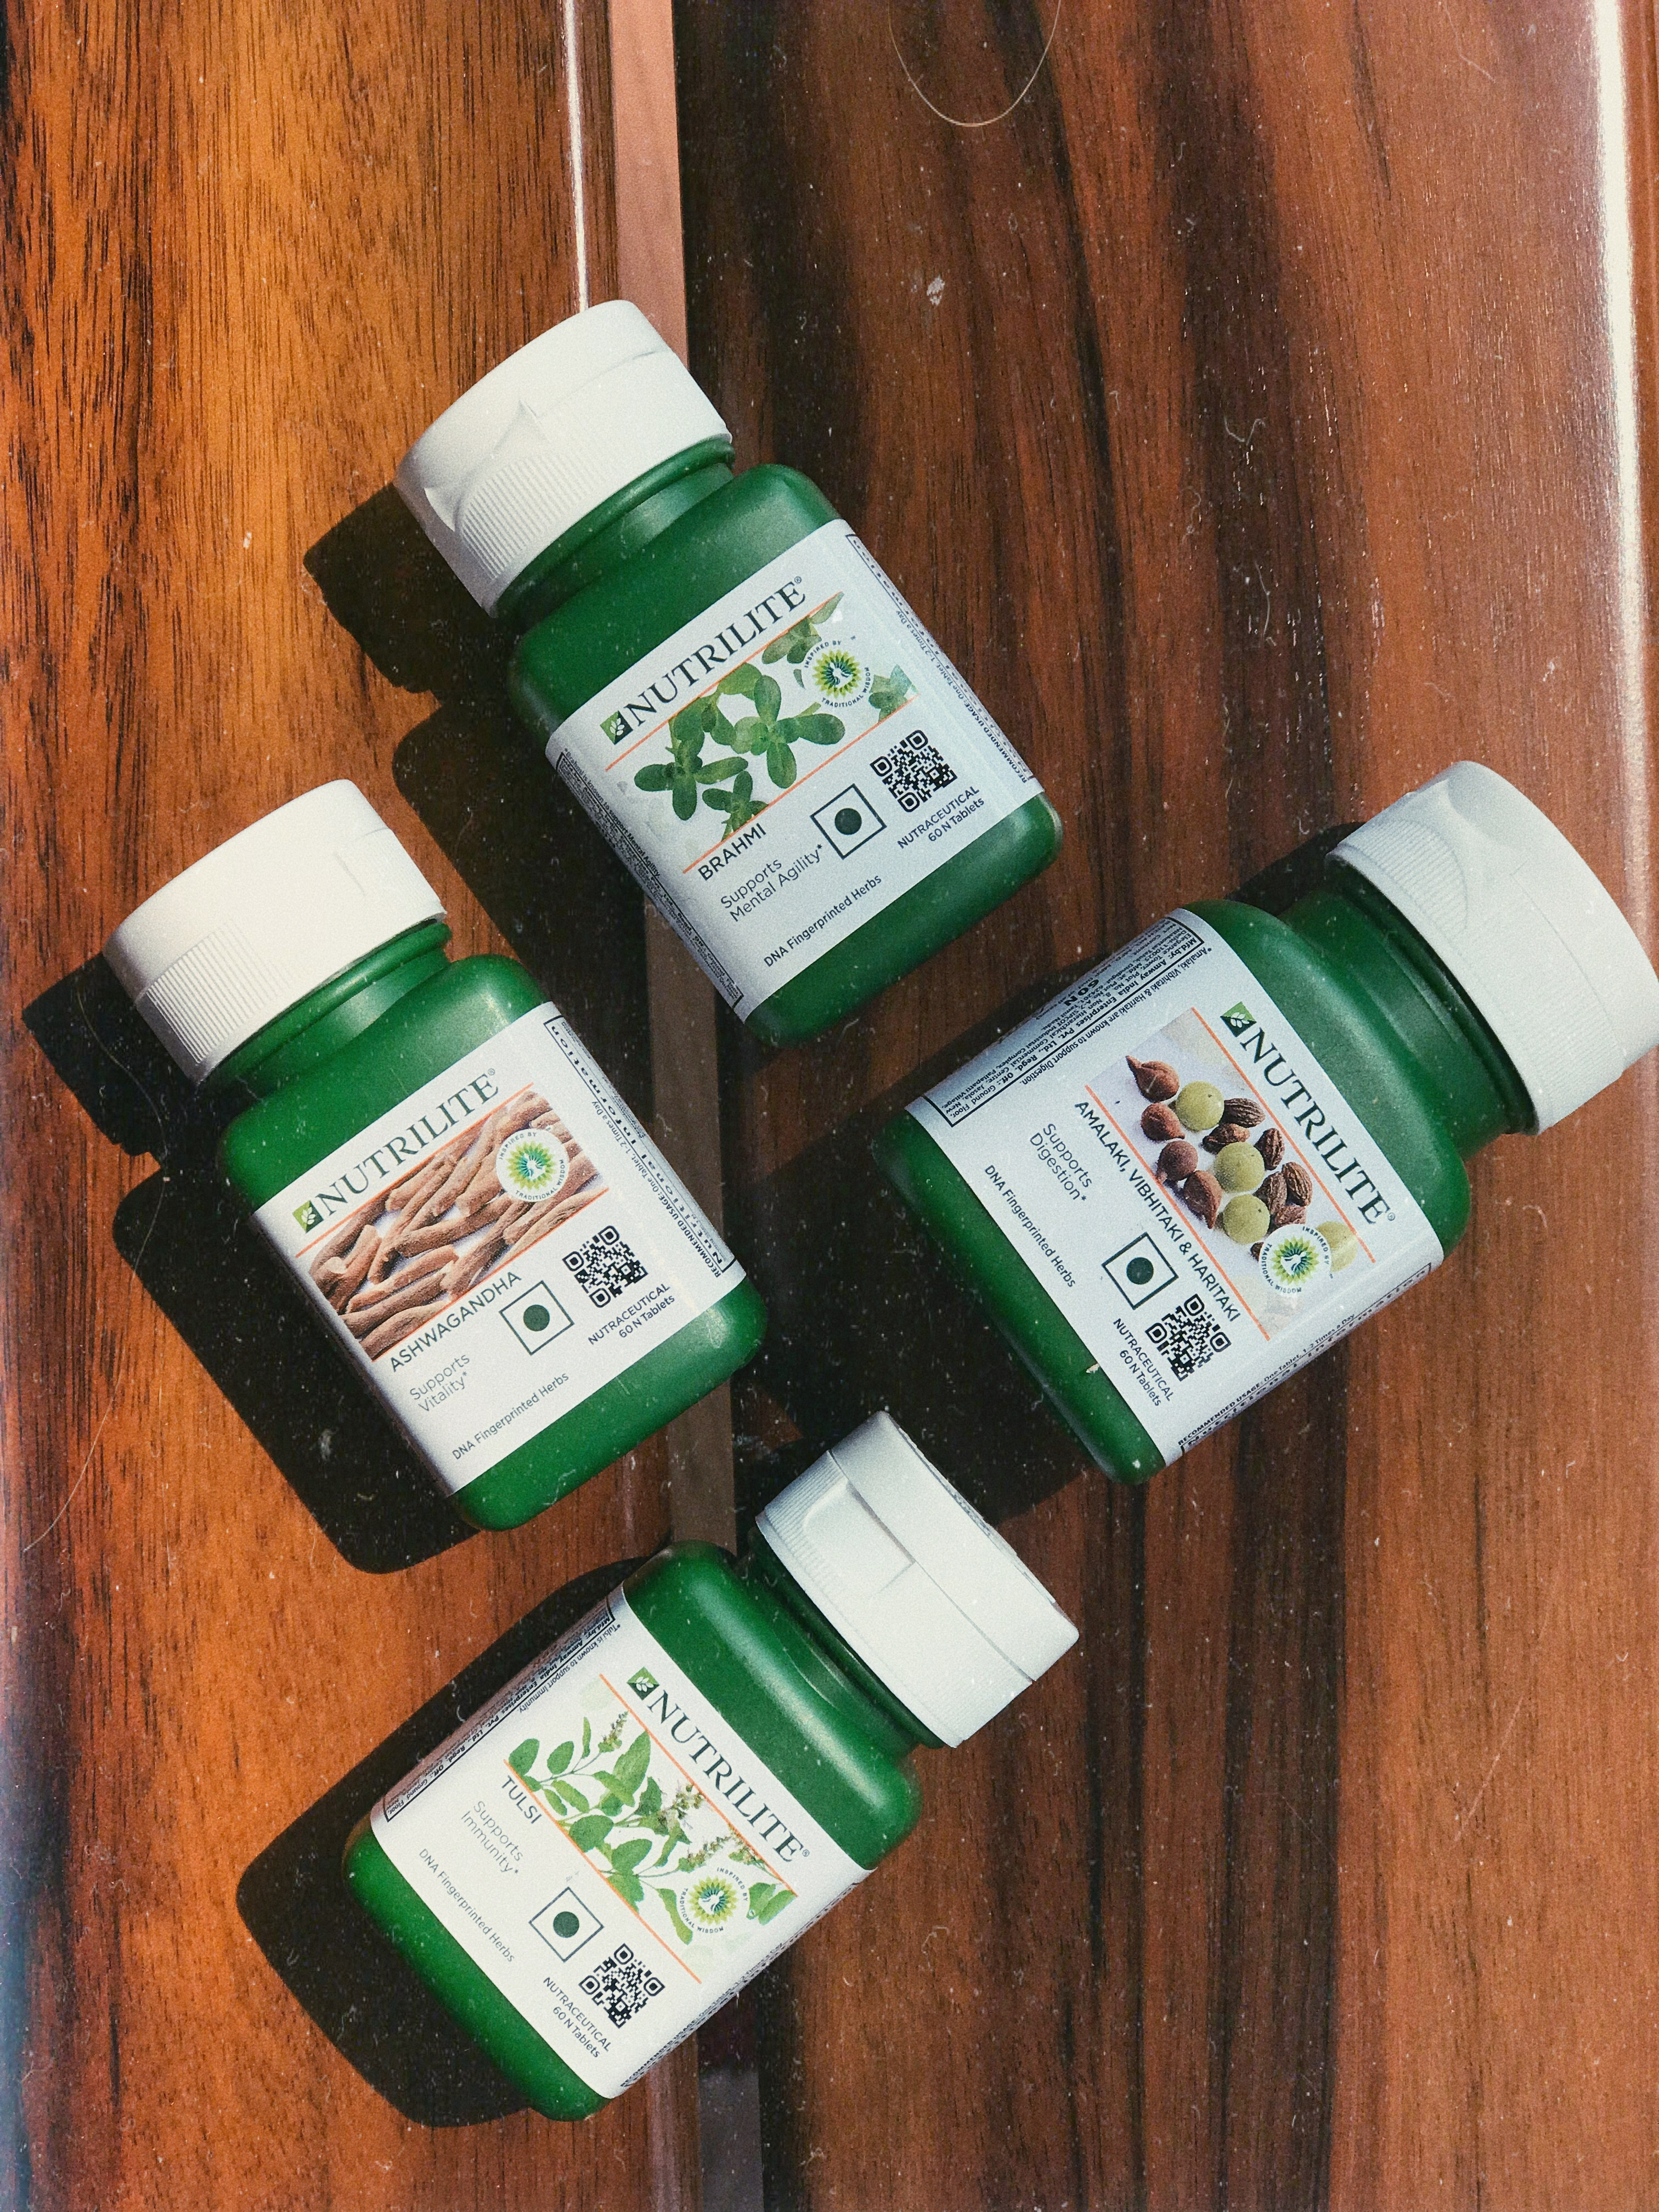 Nutrilite Traditional Indian herbs review, Huesofme blog